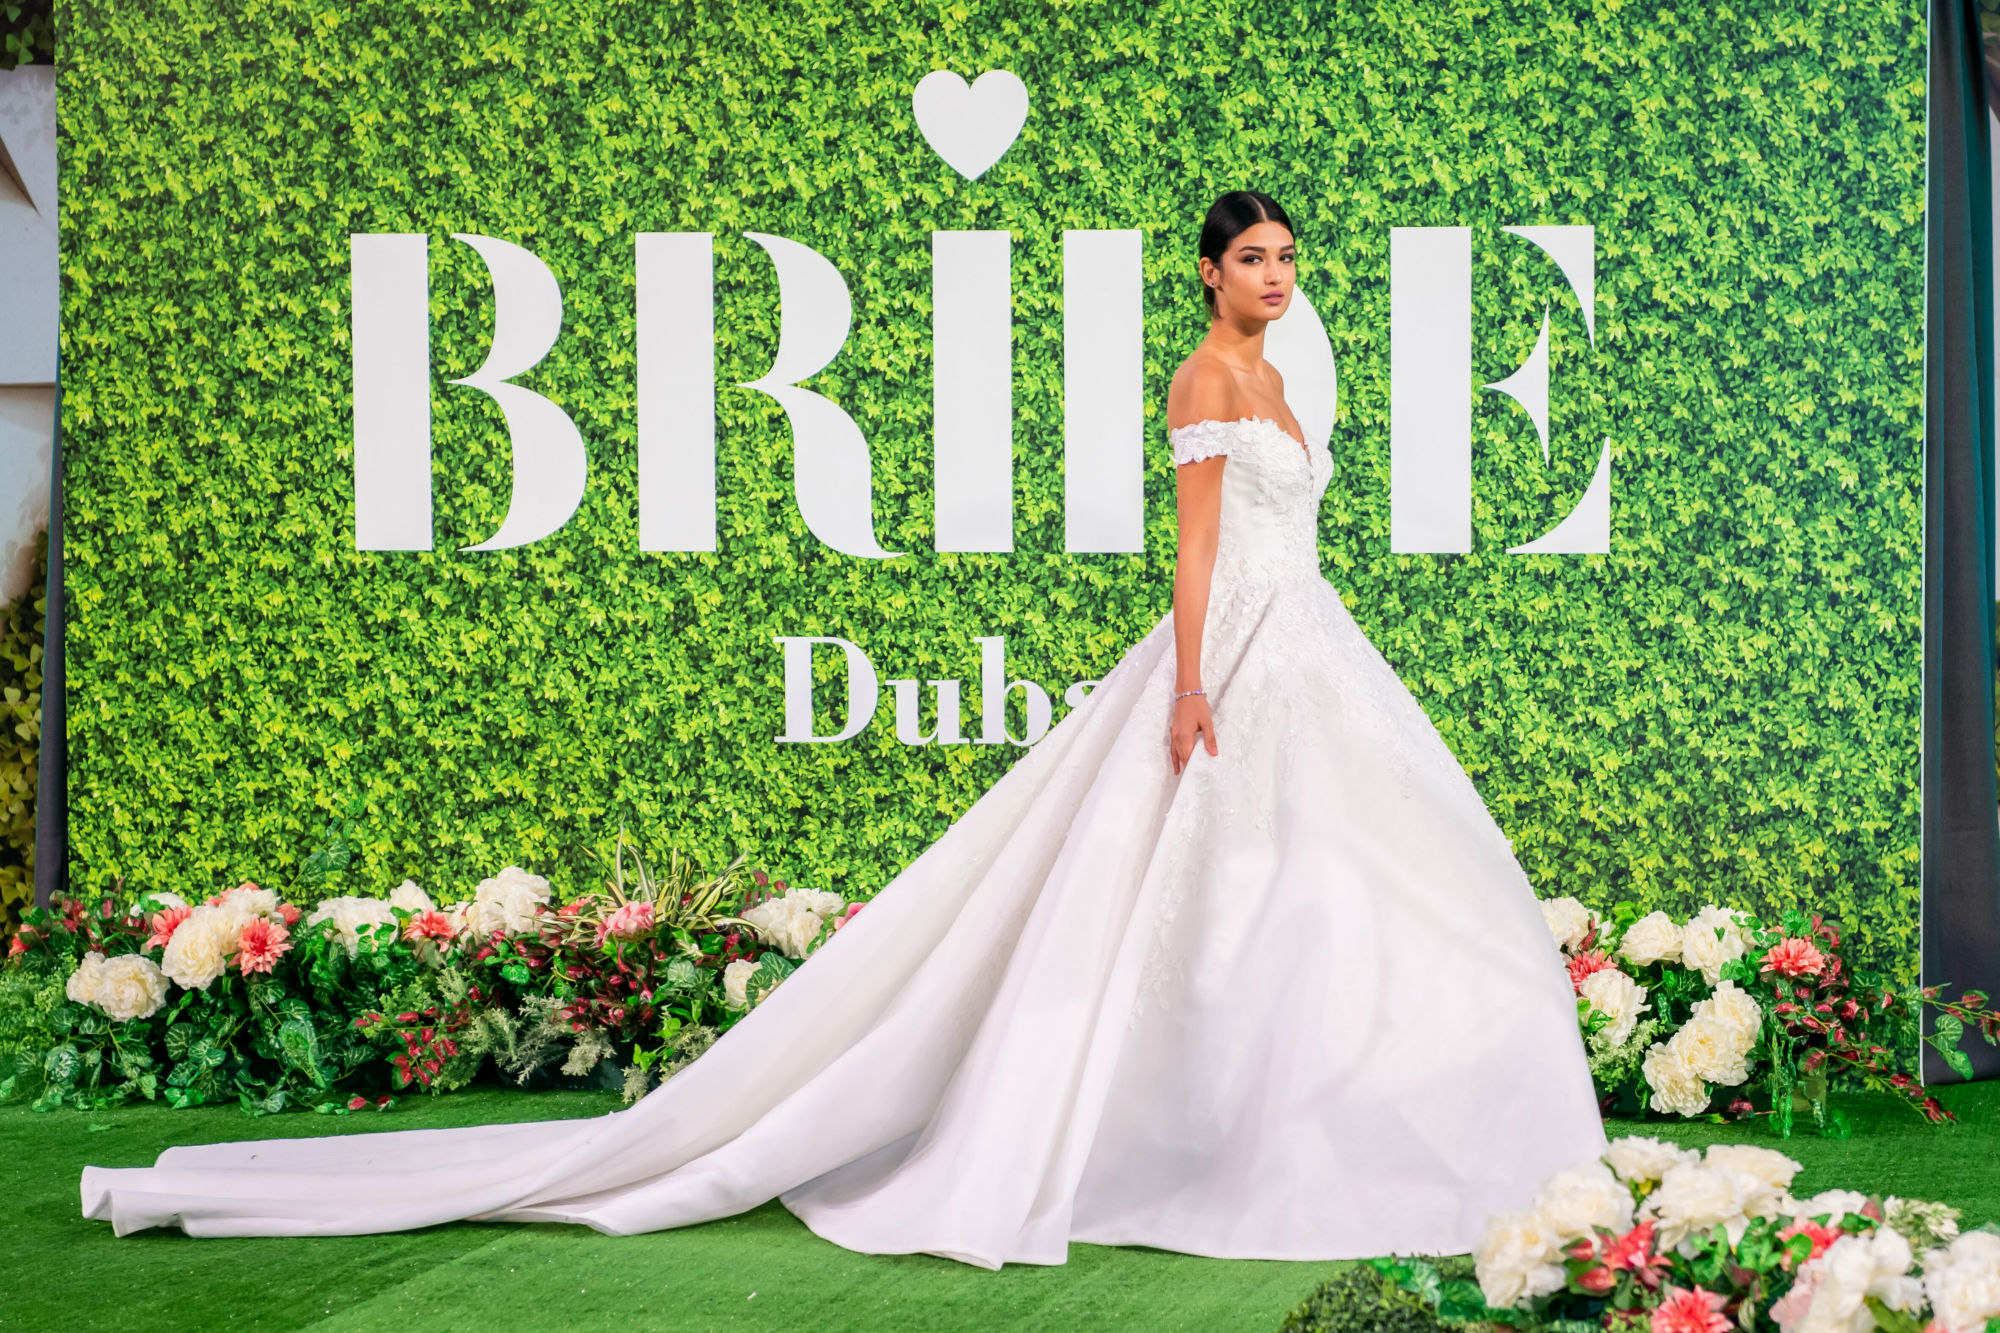 The bridal show will take place from June 26th 29th